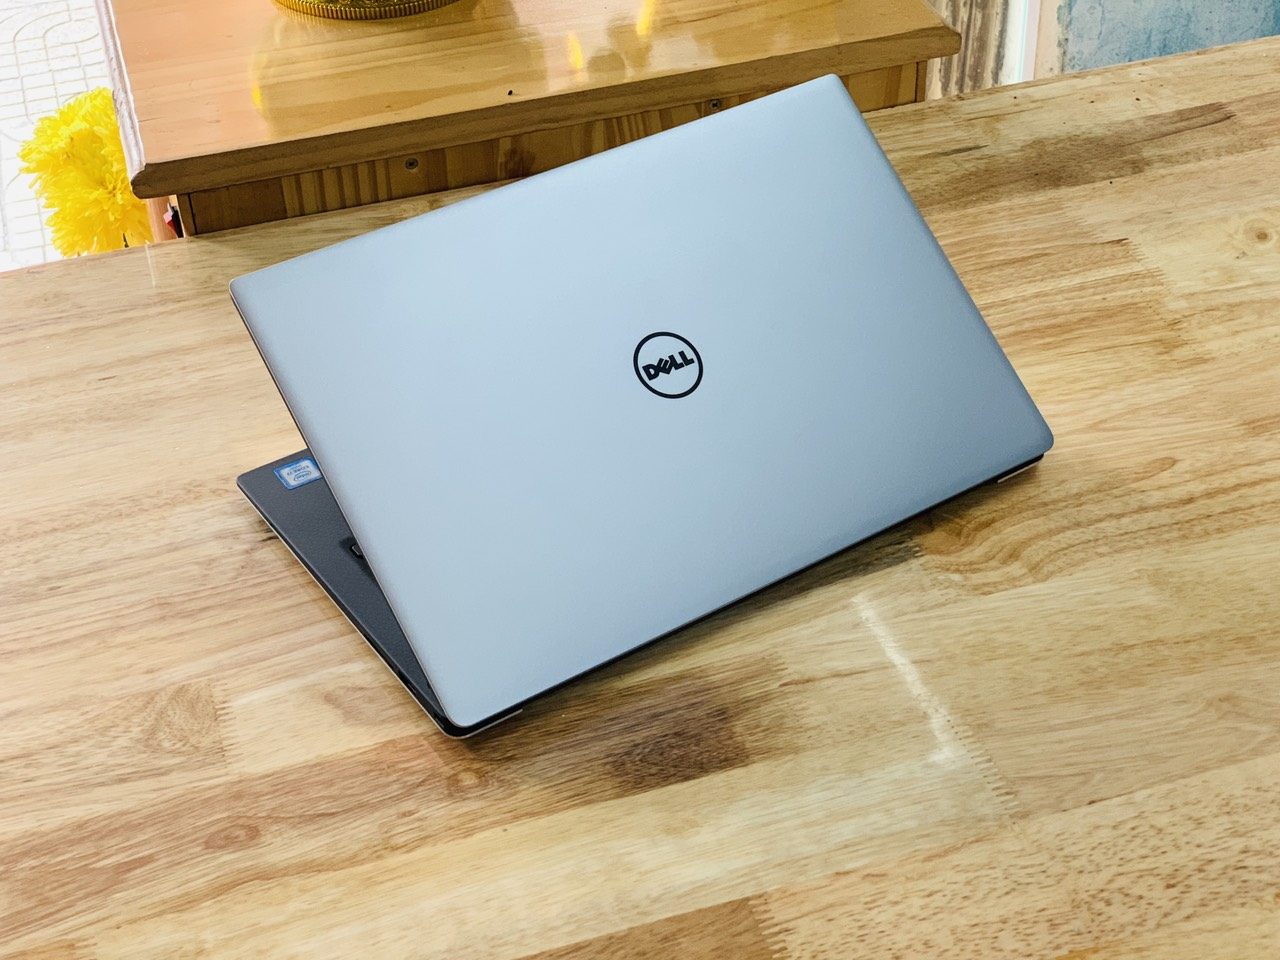 Dell XPS 13 – 9350